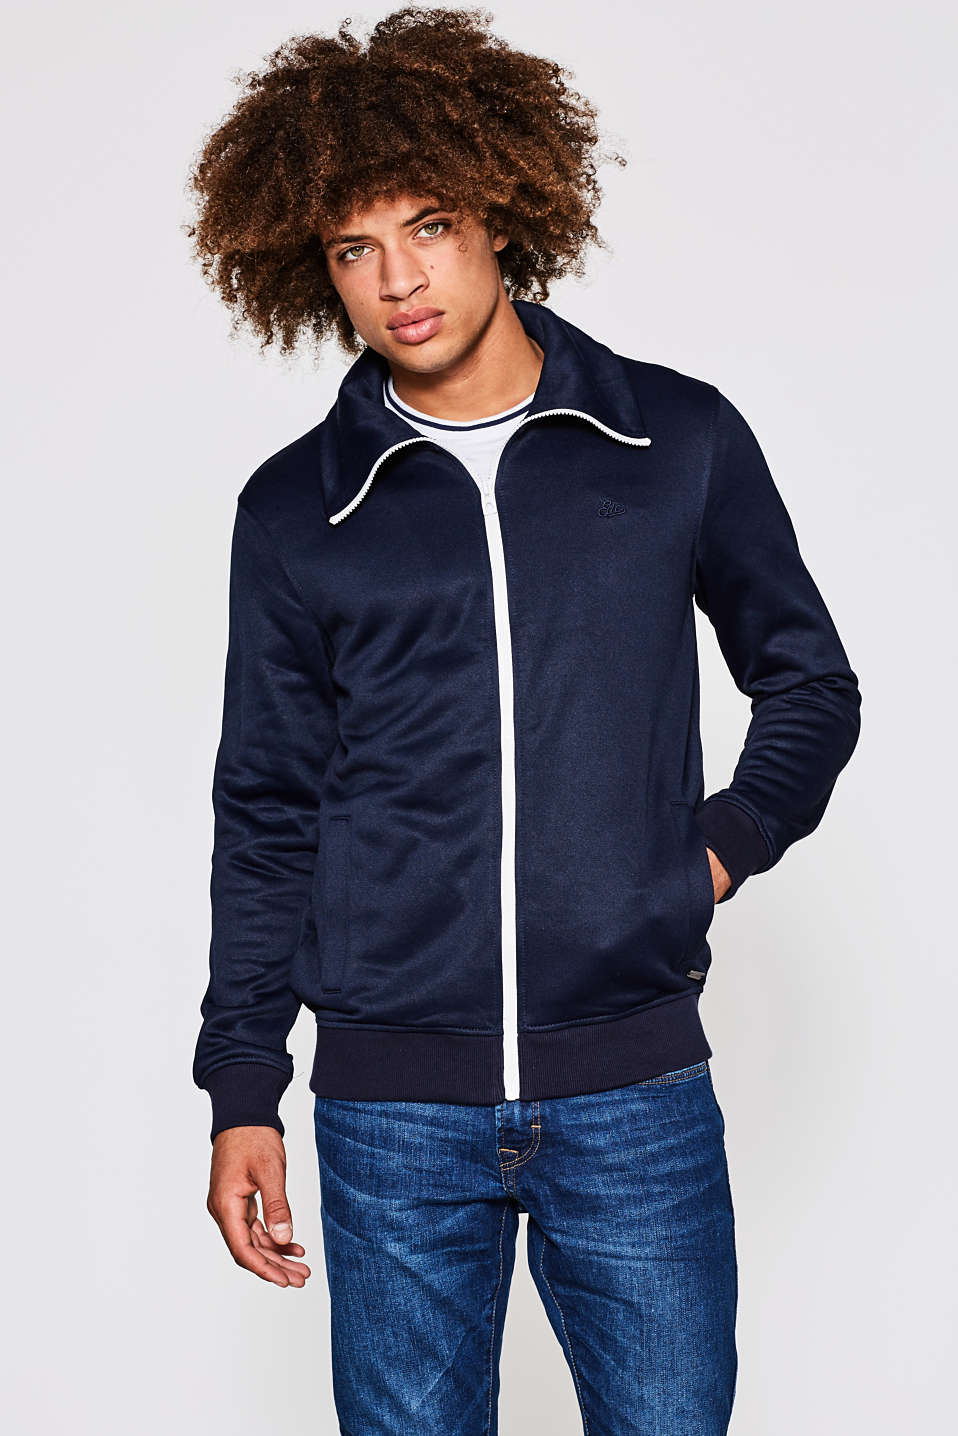 edc - Sporty cardigan with retro appeal